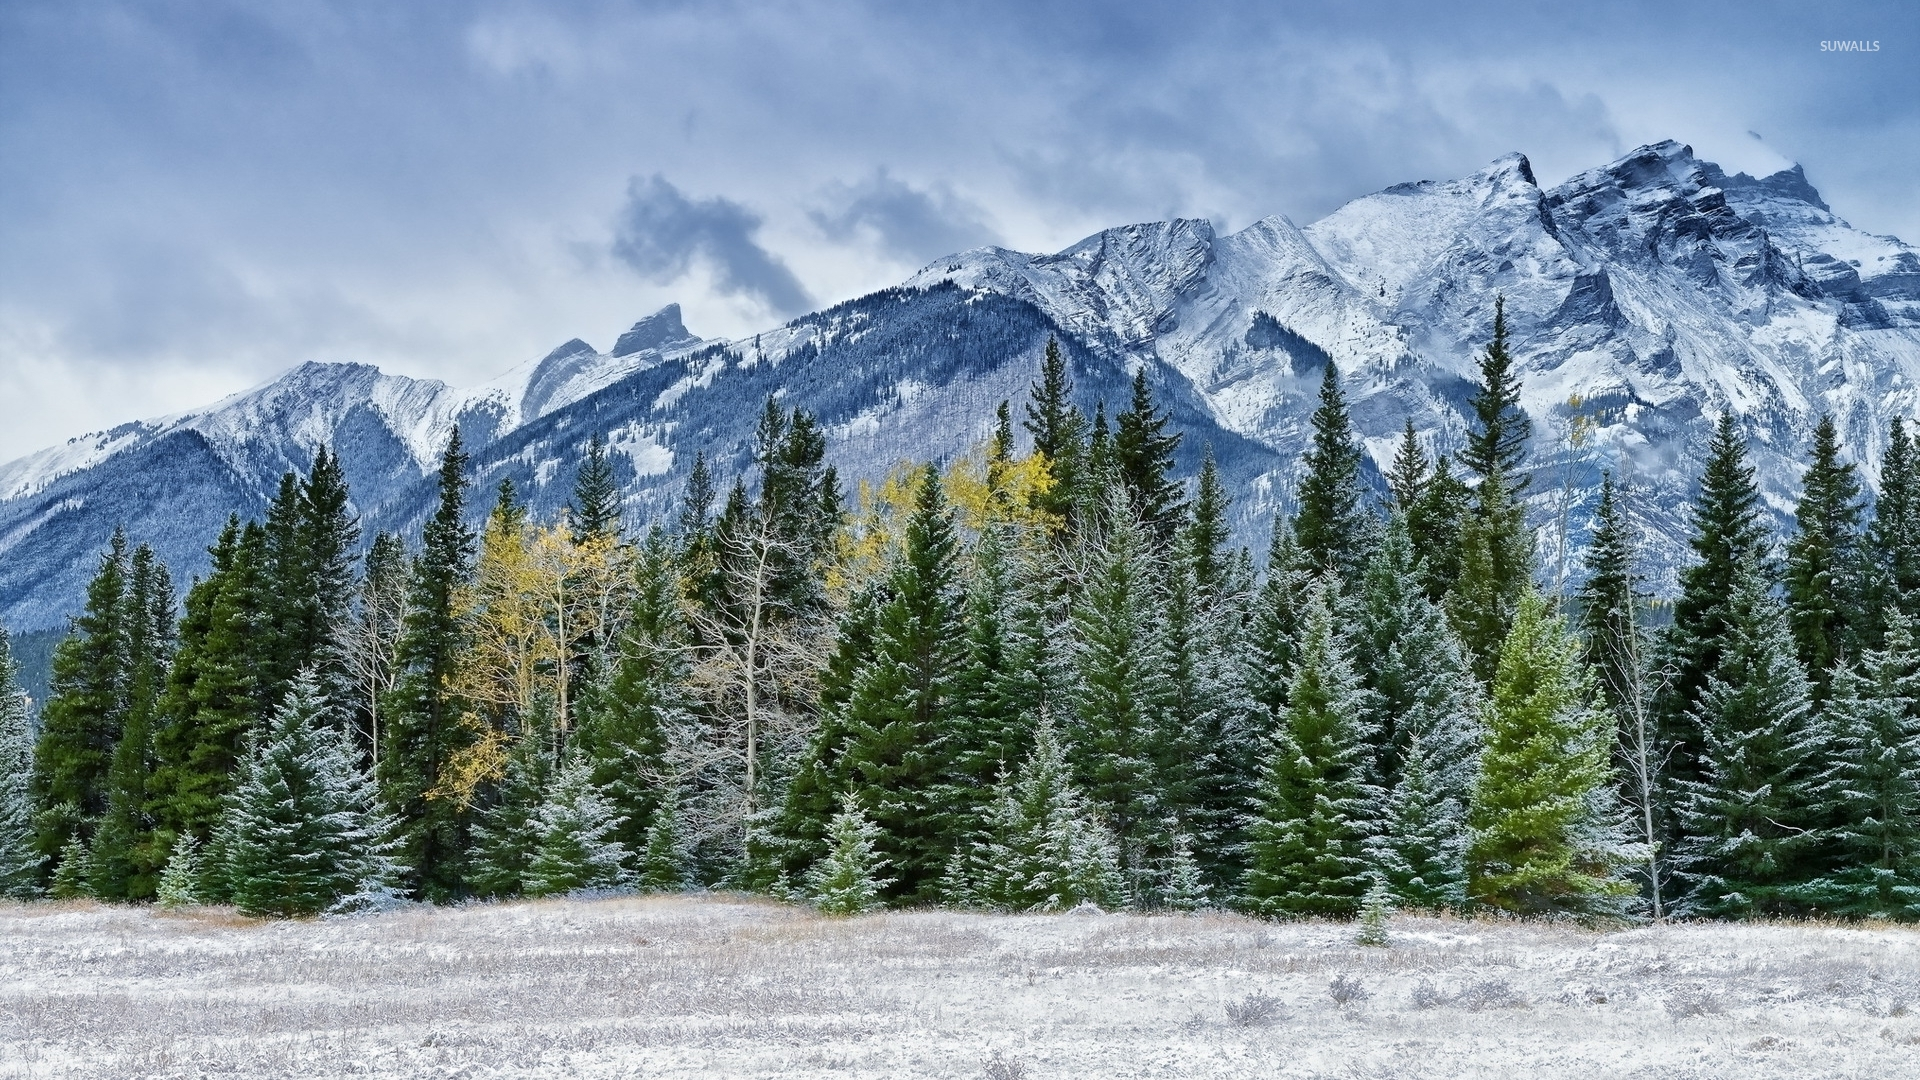 Snowy pine forest by the rocky mountains wallpaper ...